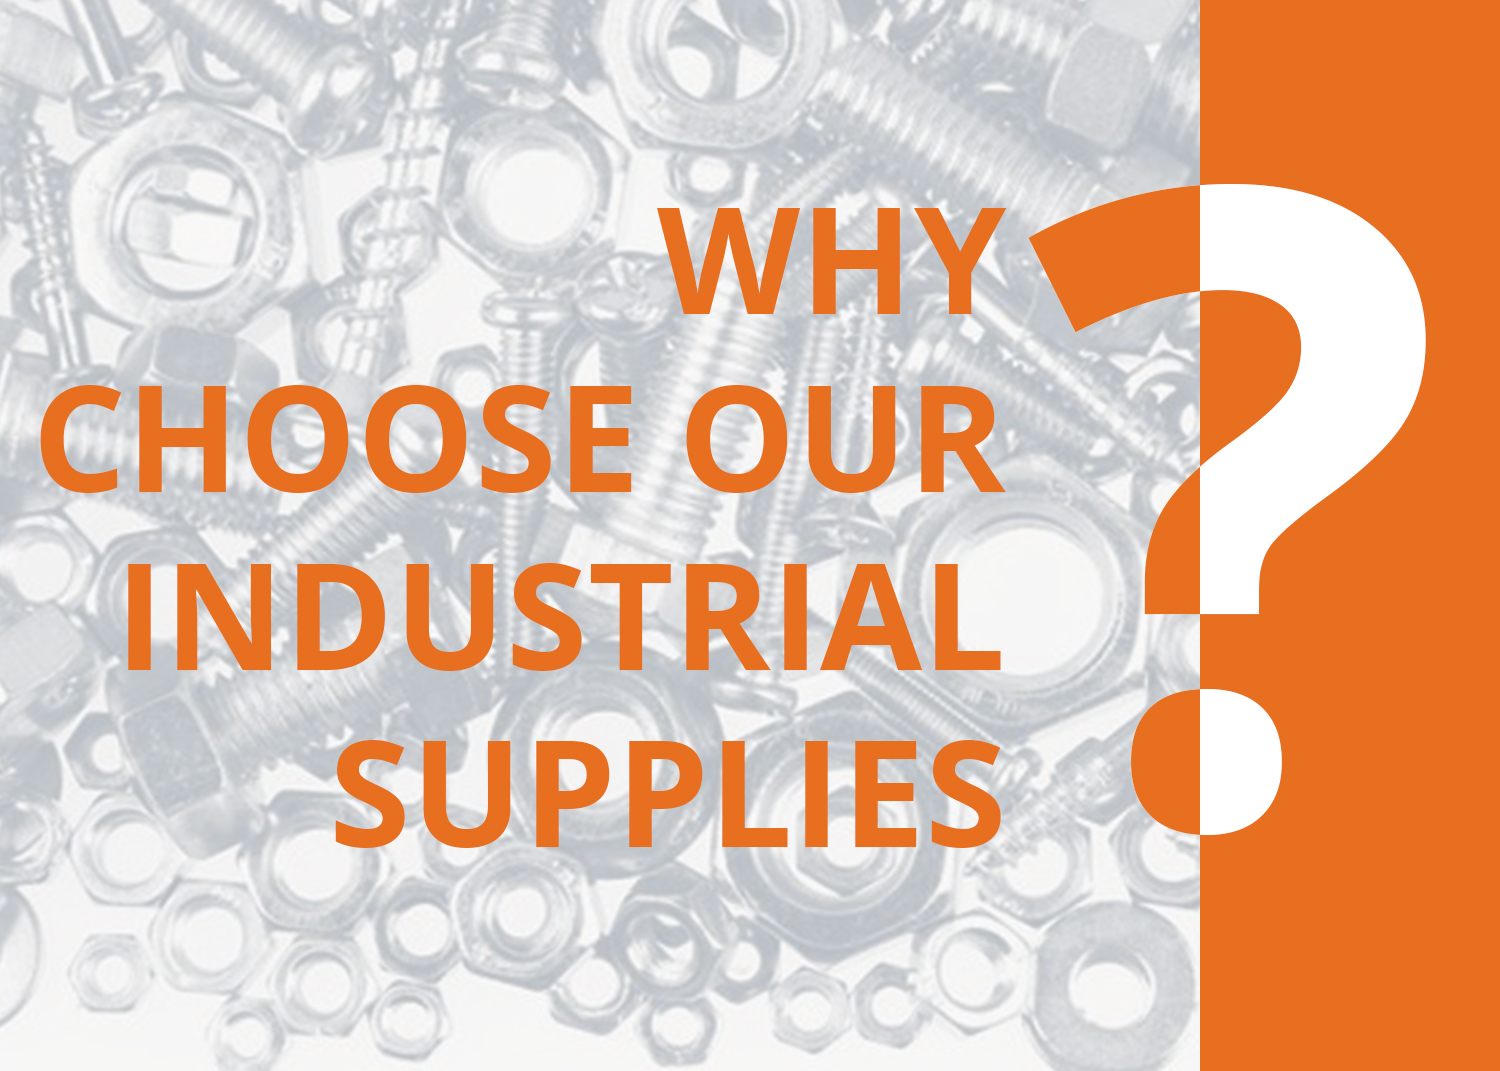 Why Choose Our Industrial Supplies?